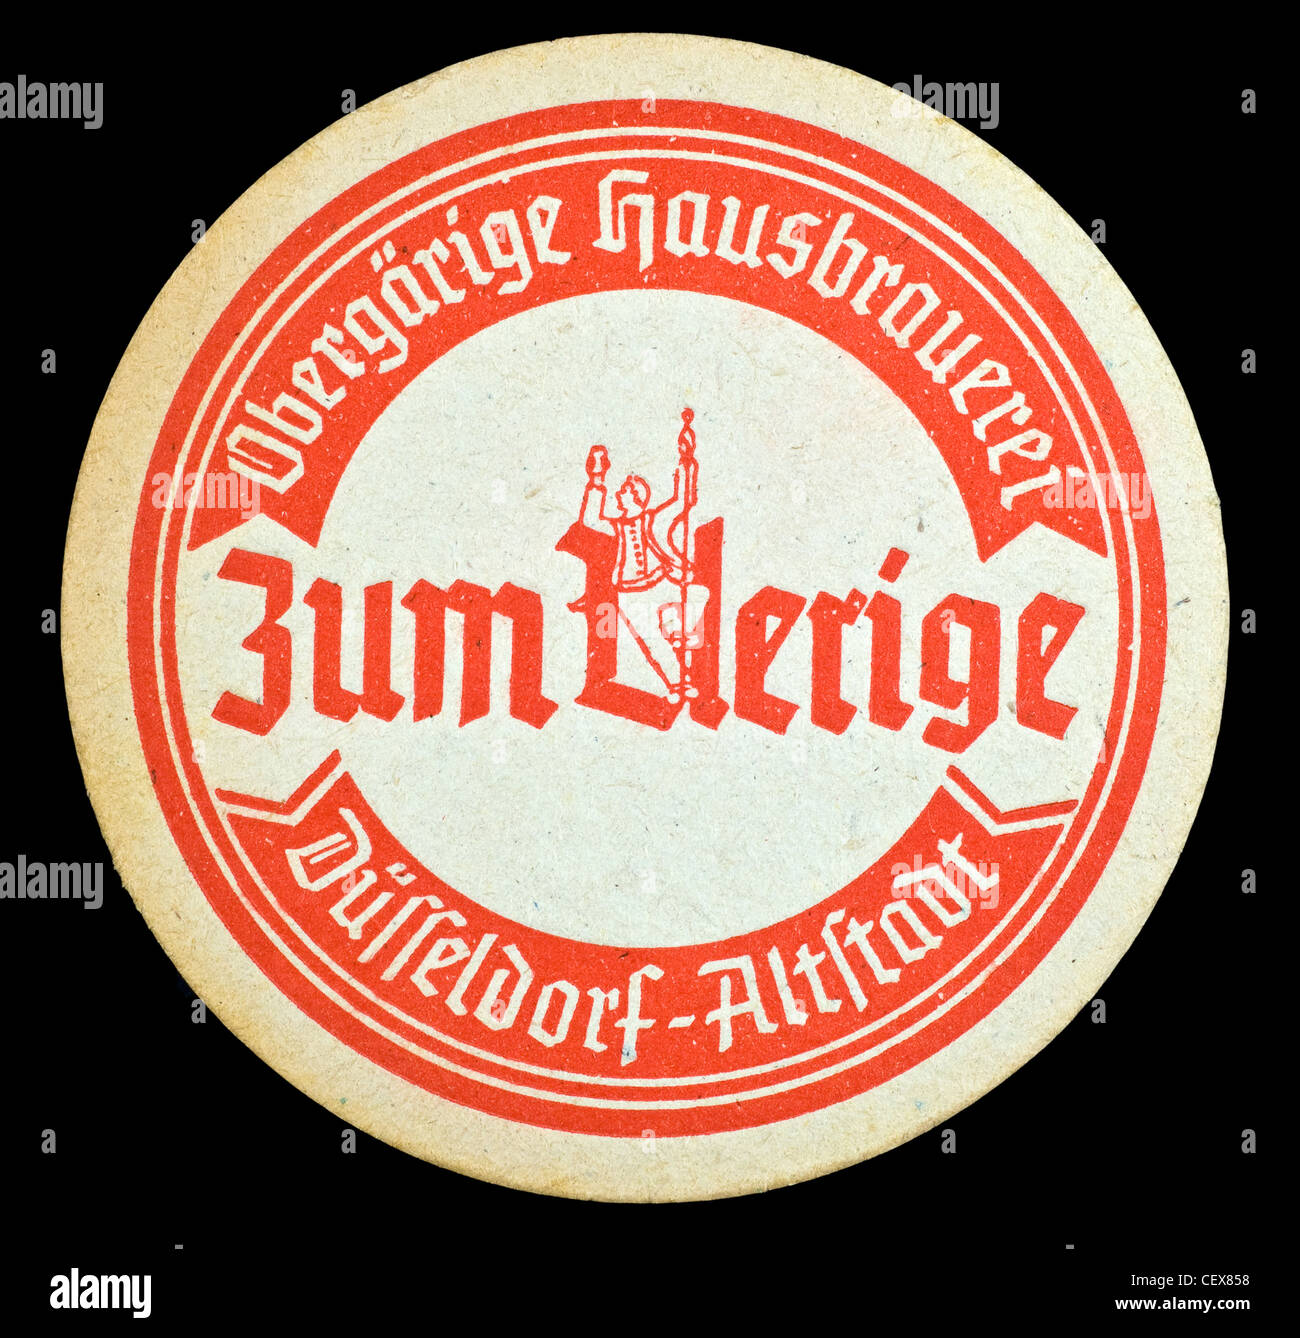 Uerige beer mat from Düsseldorf, Germany. Stock Photo